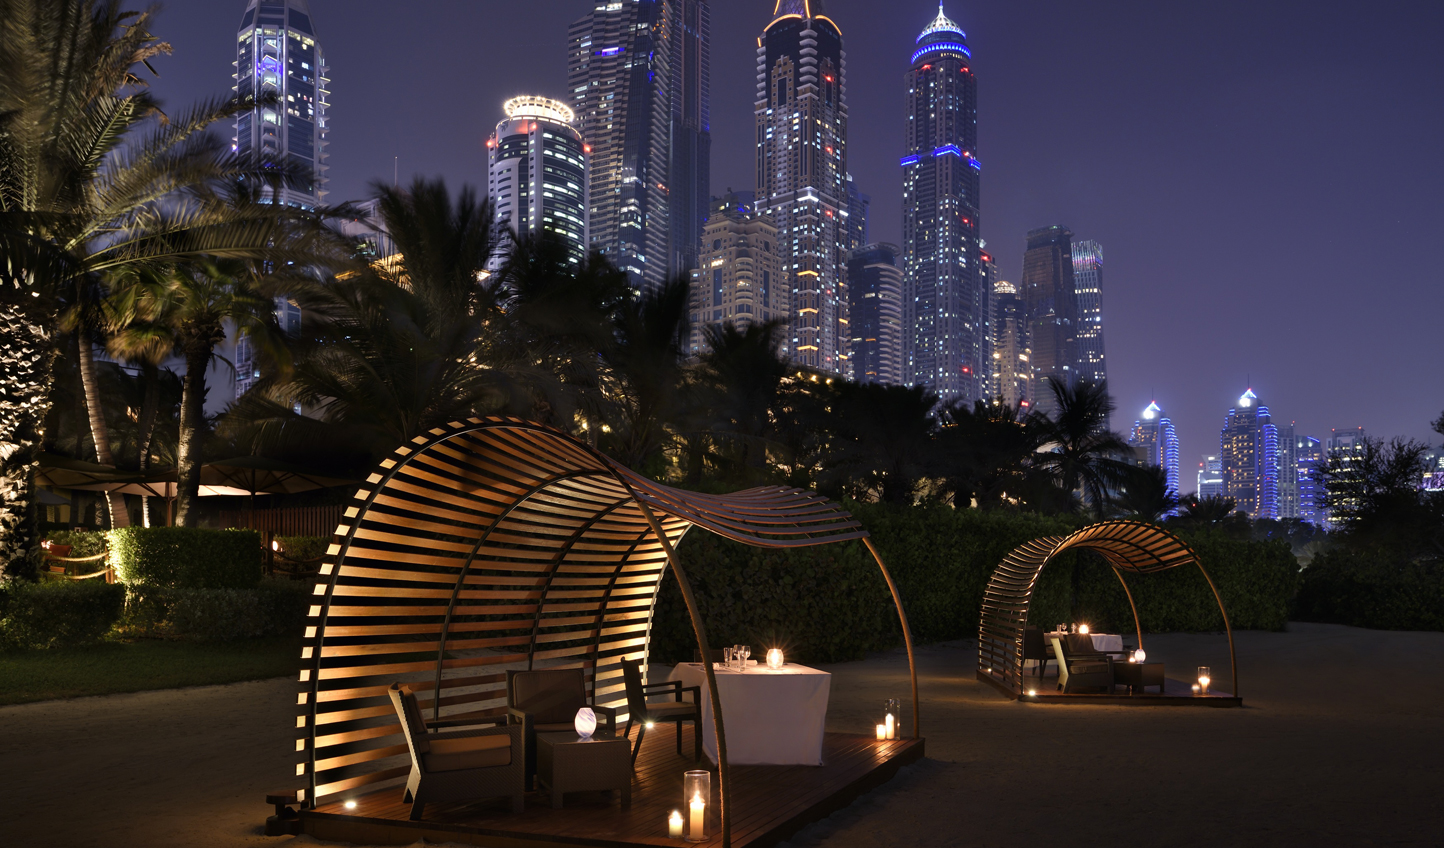 Dine with your toes in the sand and glittering city lights overhead